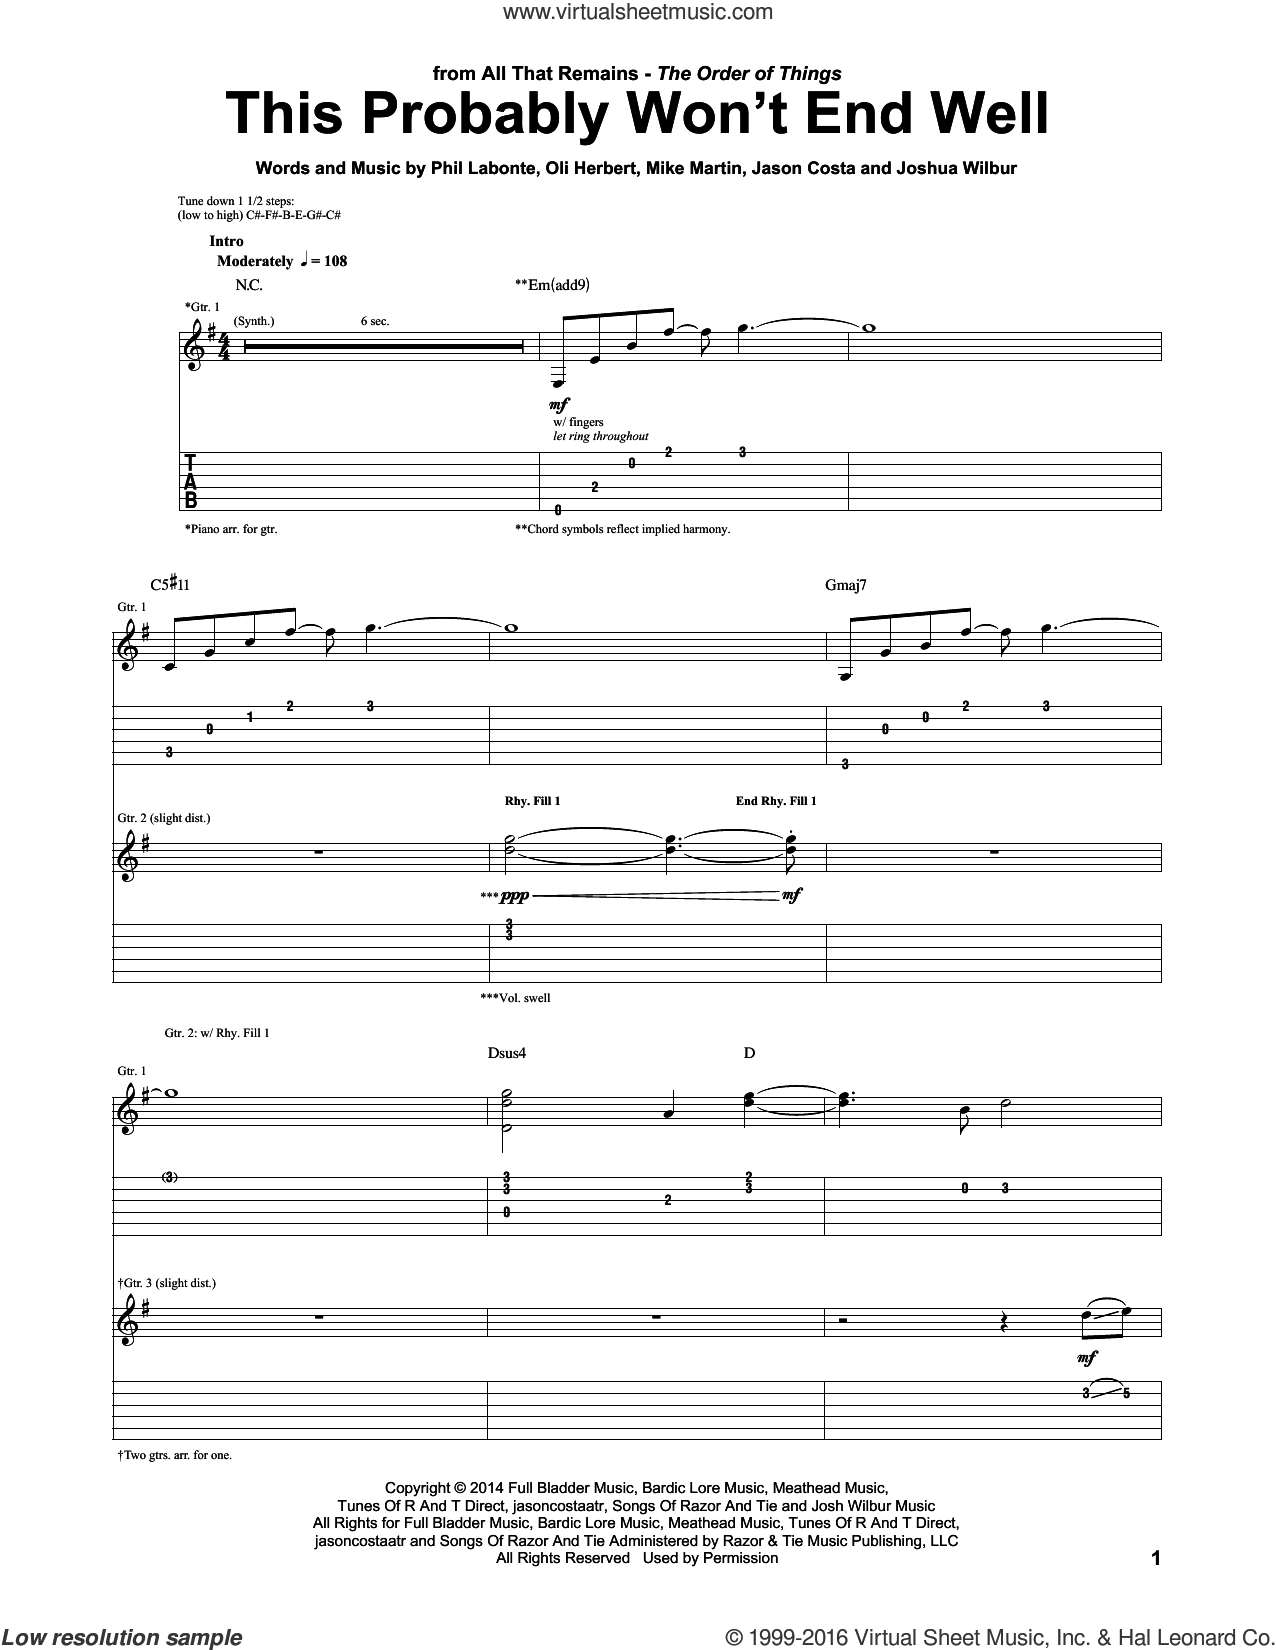 This Probably Won't End Well sheet music for guitar (tablature) by Phil Labonte